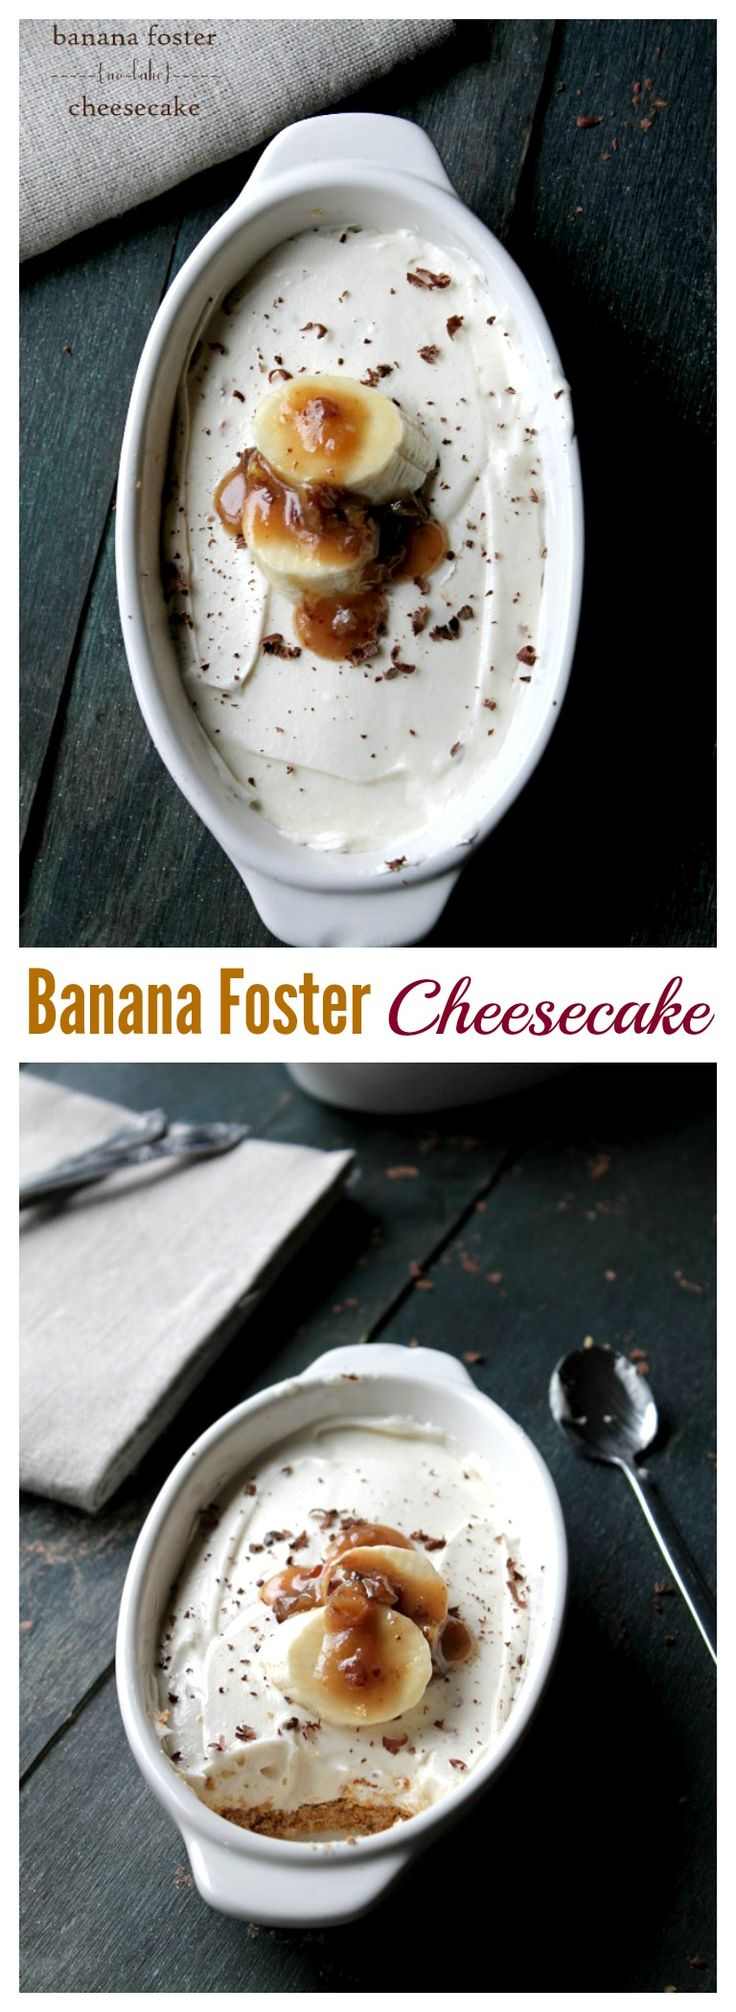 NO BAKE Banana Foster Cheesecake - So creamy and delicious, this cheesecake recipe is a must-have!